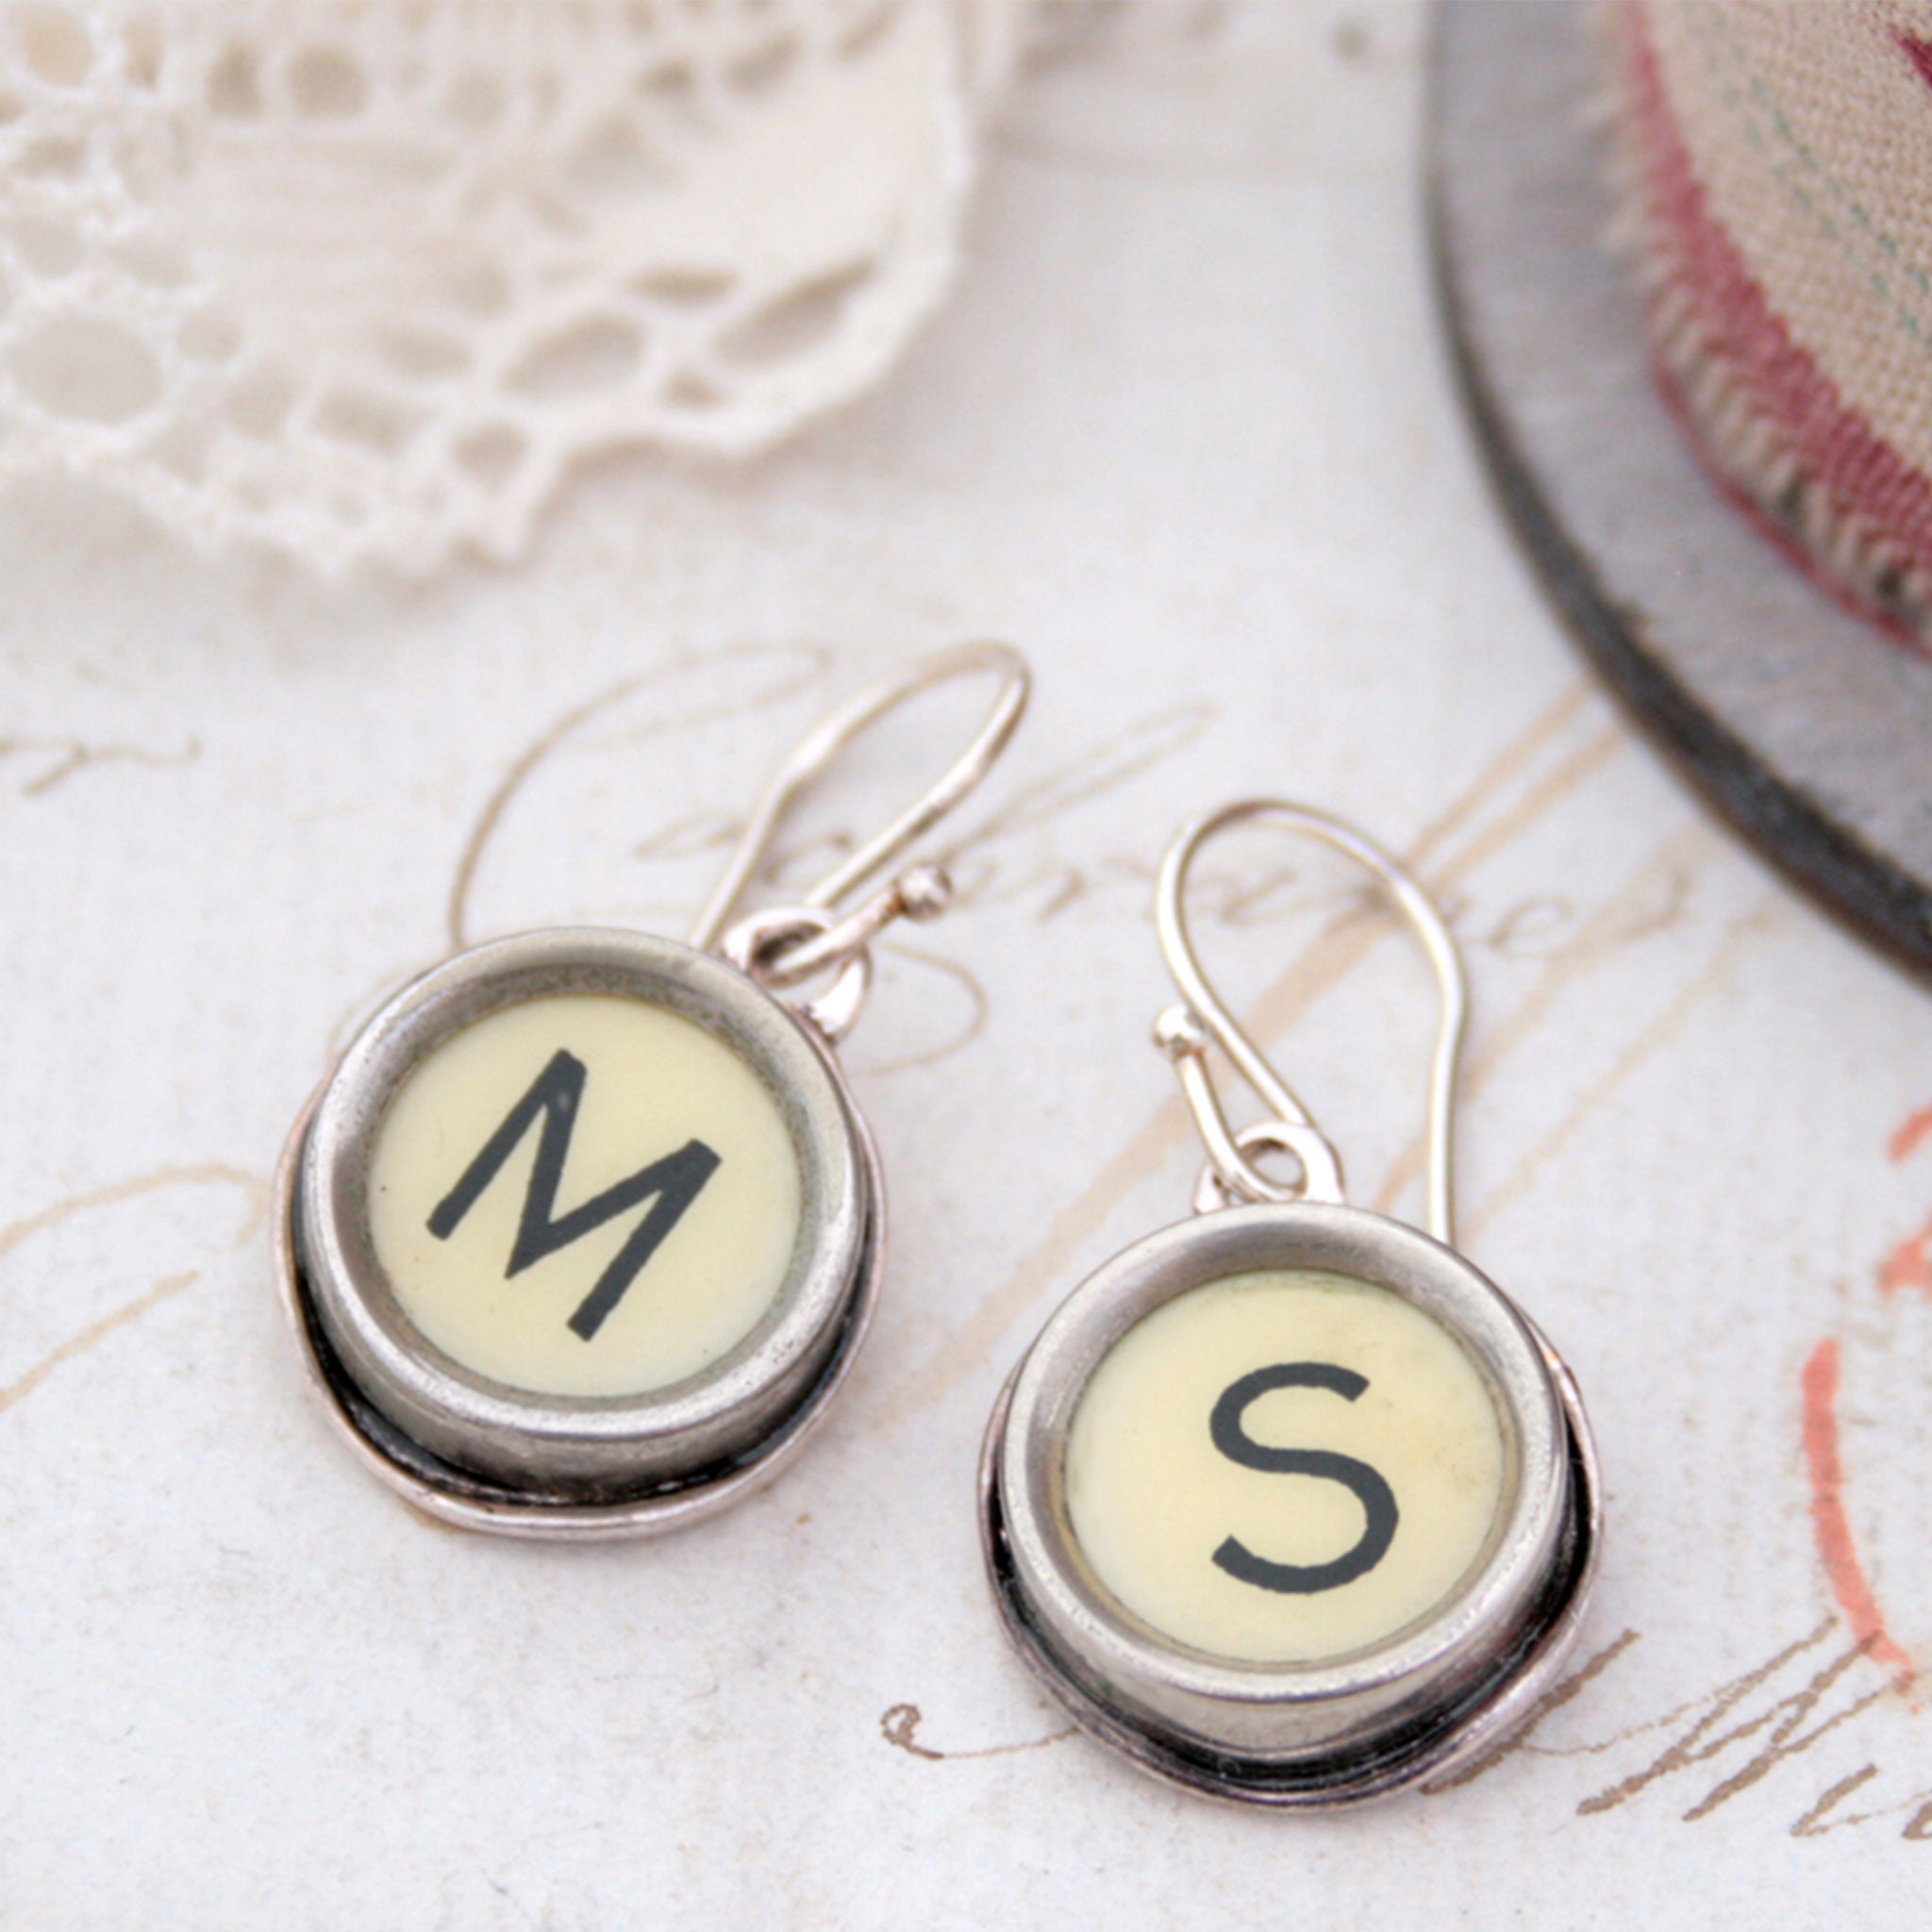 personalised initial earrings made of real typewriter keys M and S